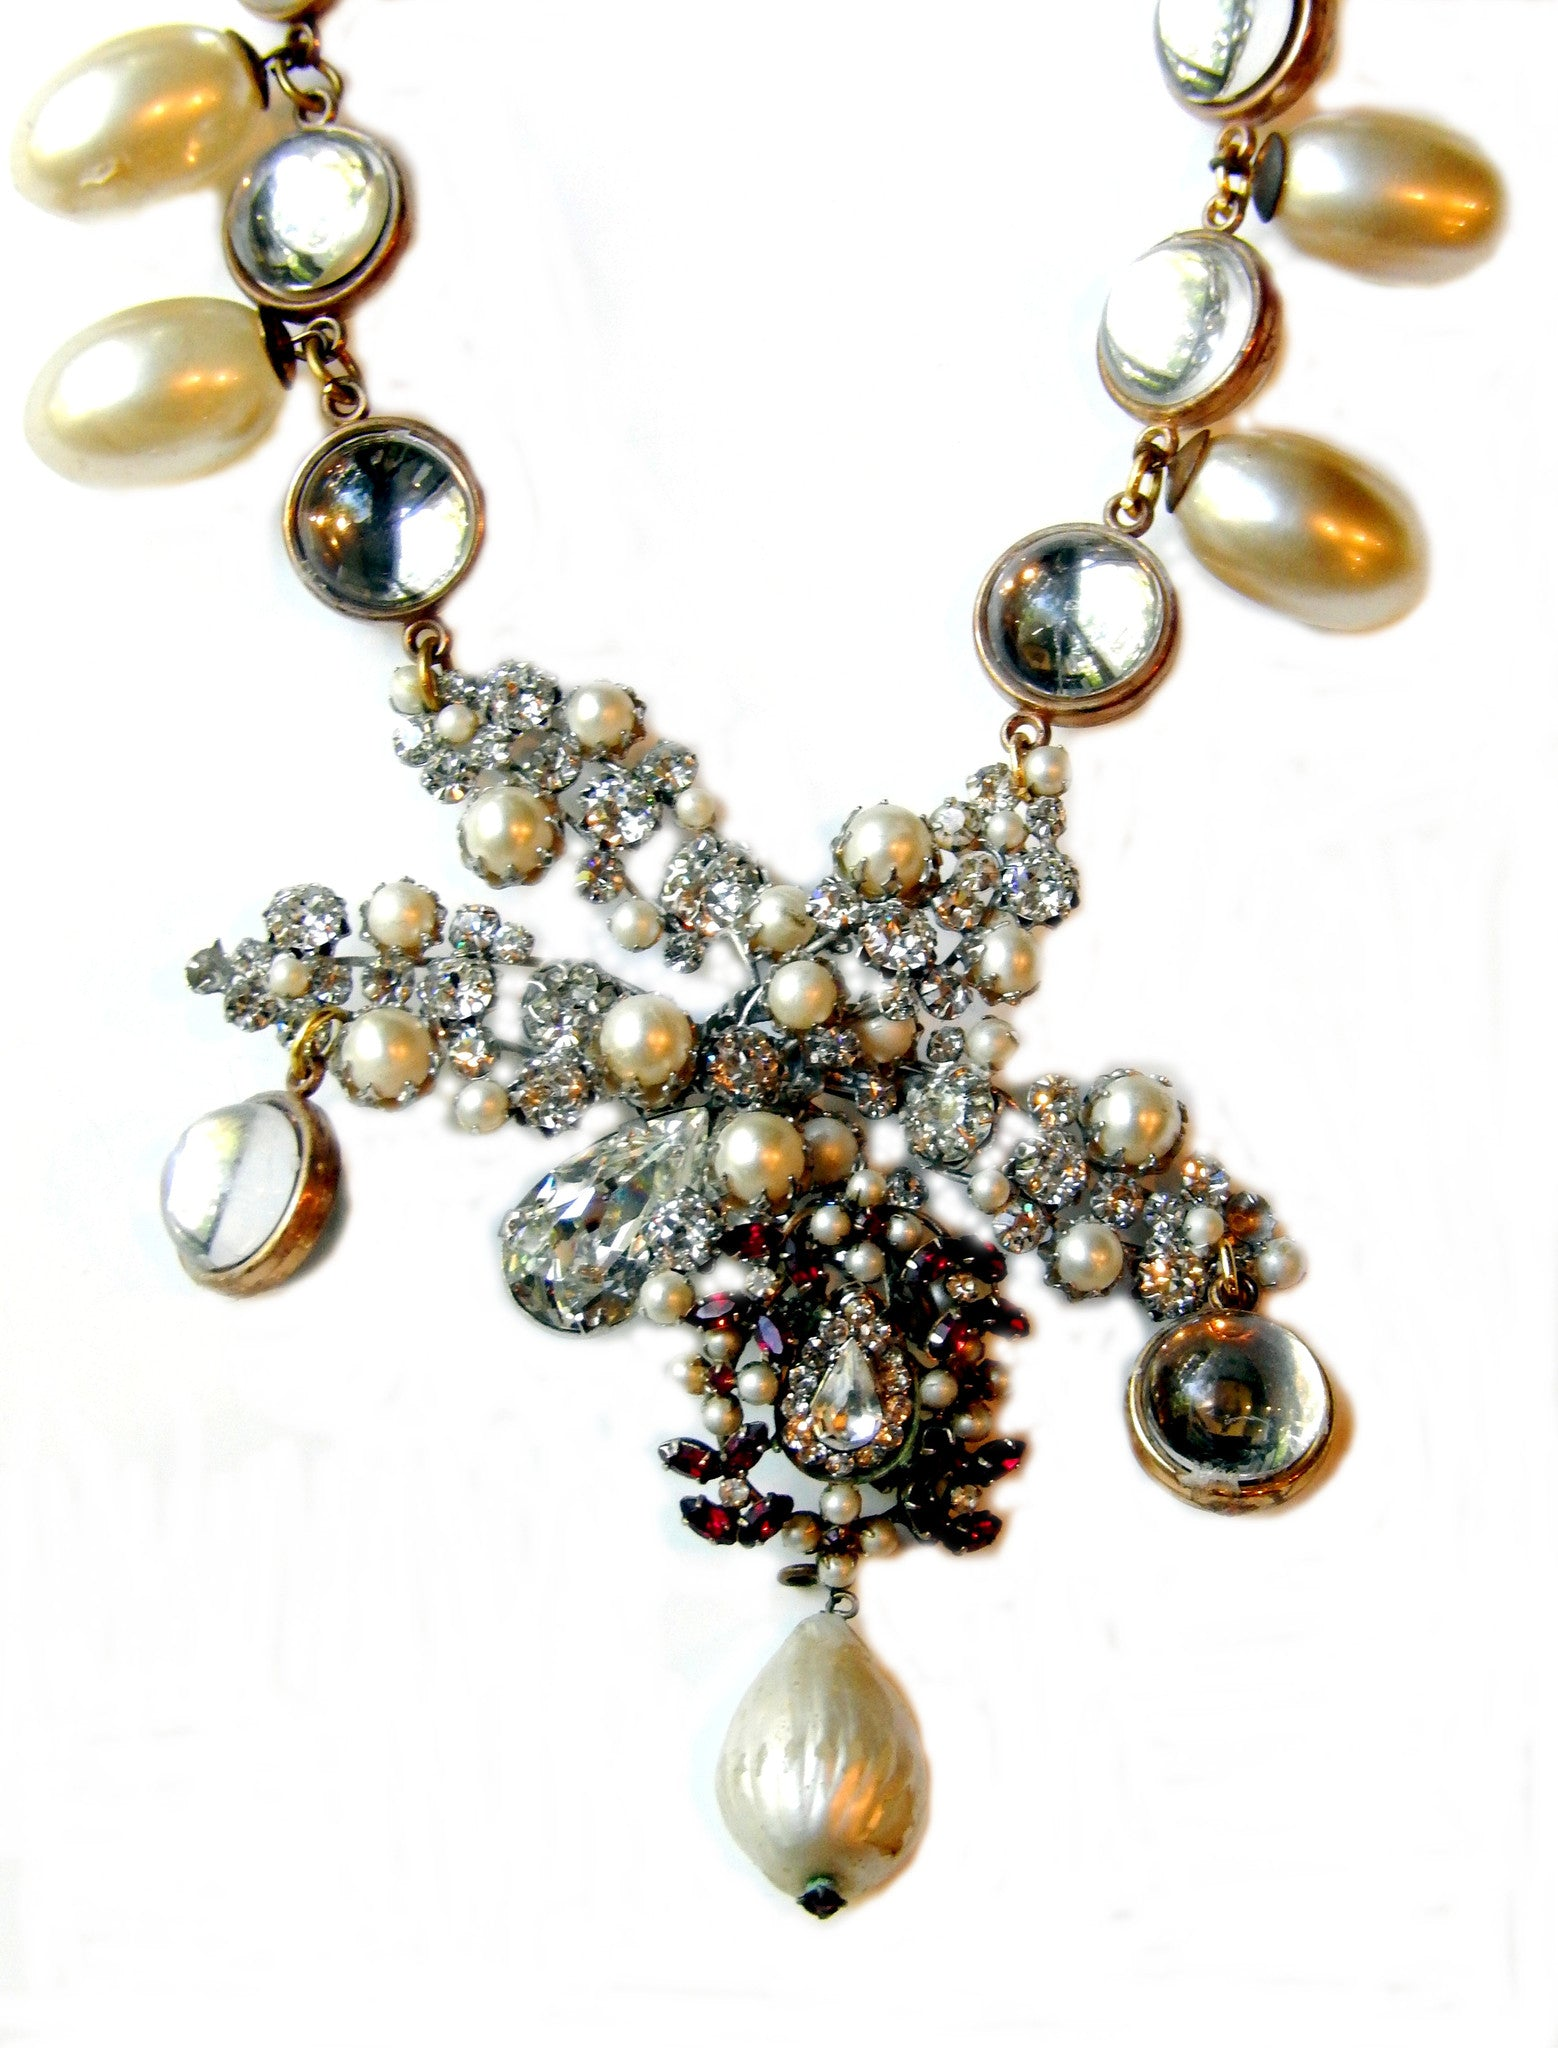 Lucite with Pearl and Rhinestone Fronds